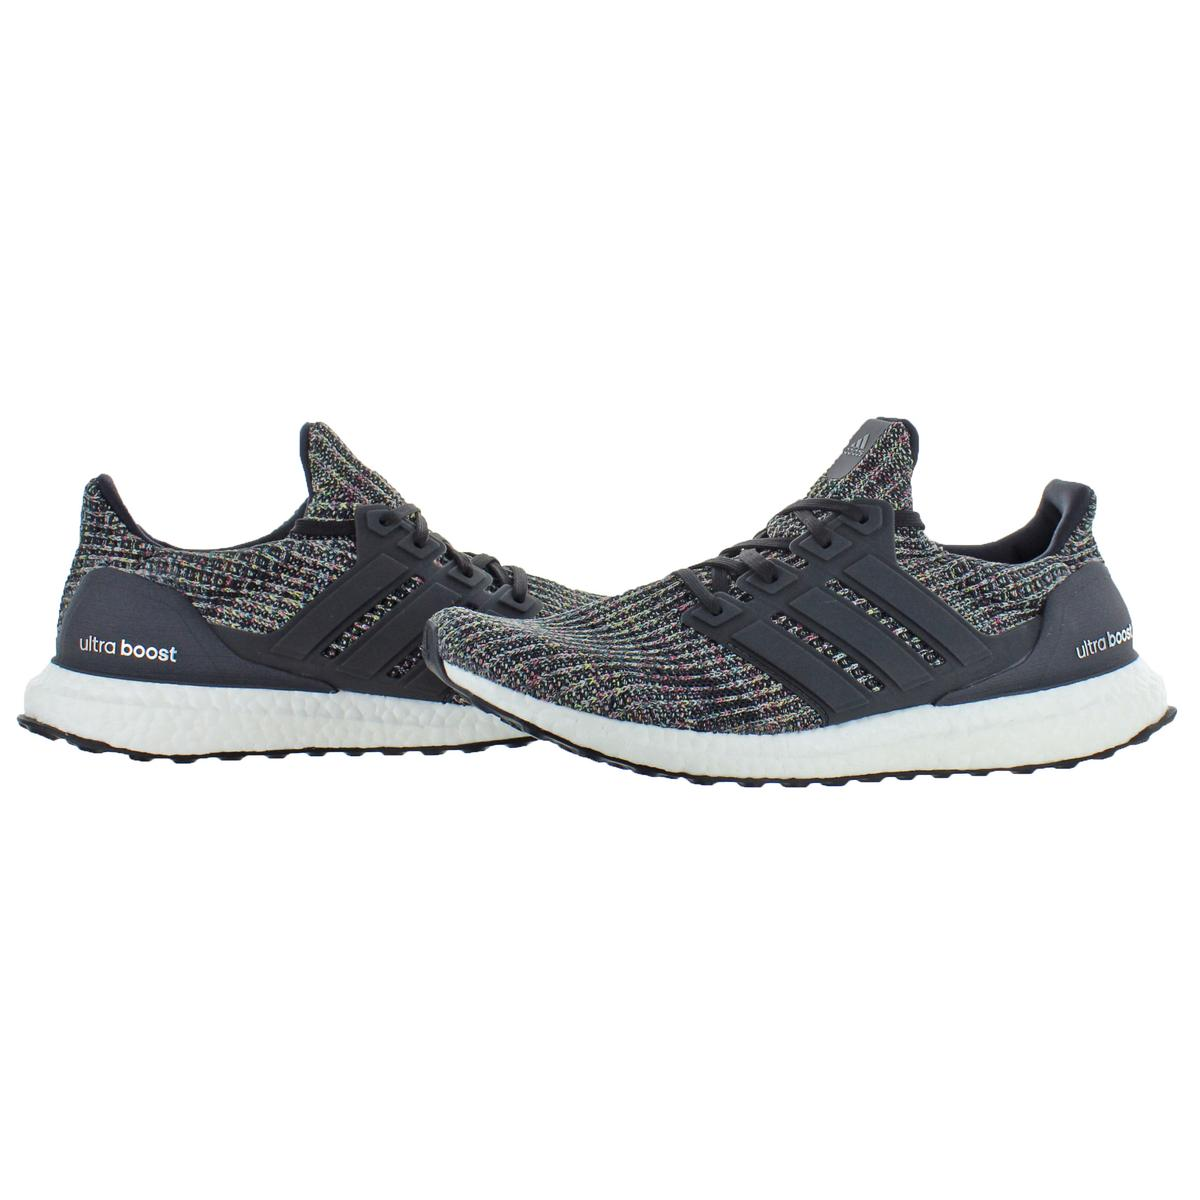 Details about Adidas Men's UltraBoost Primeknit Running Shoes Sneakers